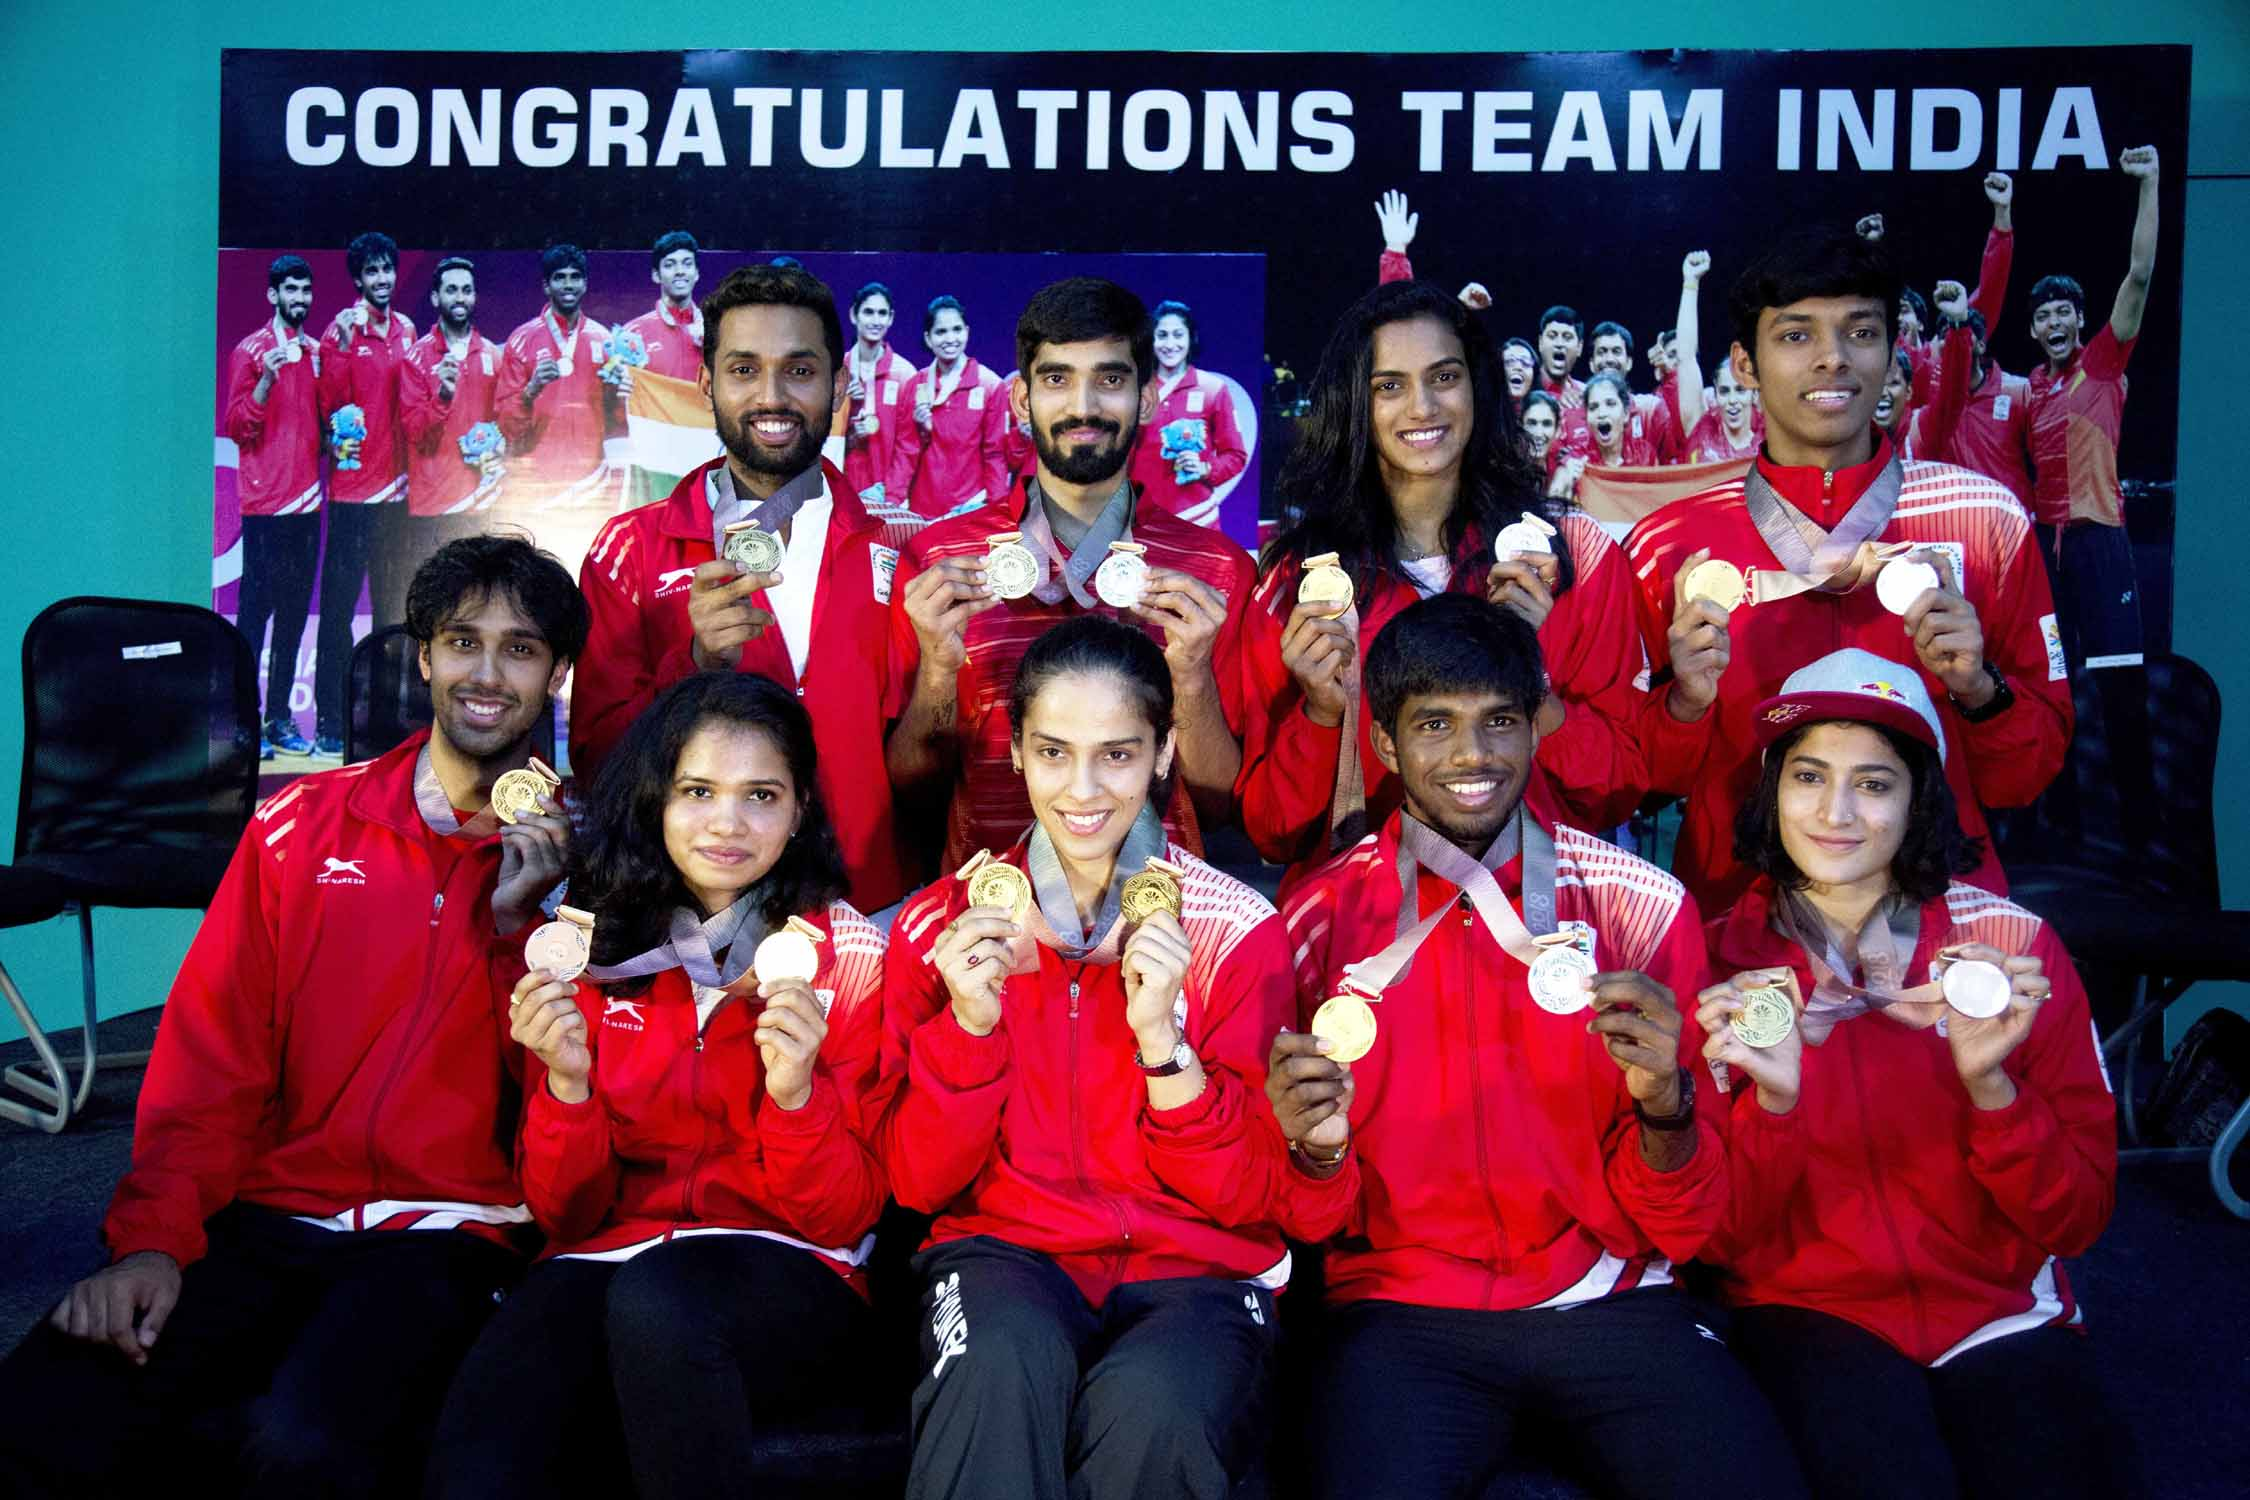 Indian badminton players (from top left) H.S Prannoy, Srikanth Kidambi, P.V. Sindhu, Chirag Chandrashekhar Shetty (from bottom left) Pranaav Jerry Chopra, Sikki Reddy, Saina Nehwal, Satwiksairaj Rankireddy and Ashwin Ponnappa pose for a photograph holding their Commonwealth Games medals during a press conference in Hyderabad, India on Tuesday.